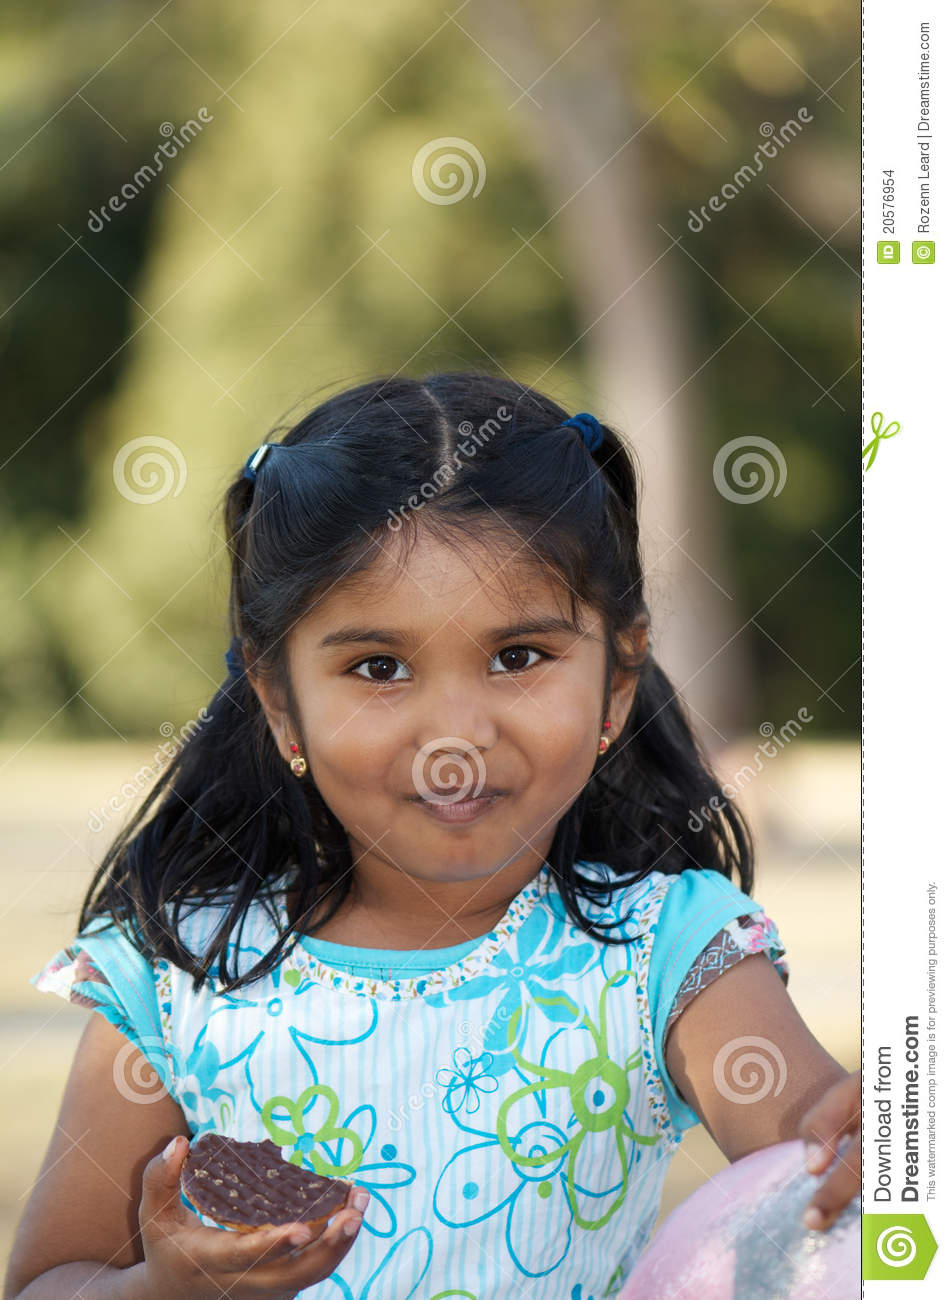 Cute Indian Child Eating Biscuit Stock Photo Image Of Girl Sweet